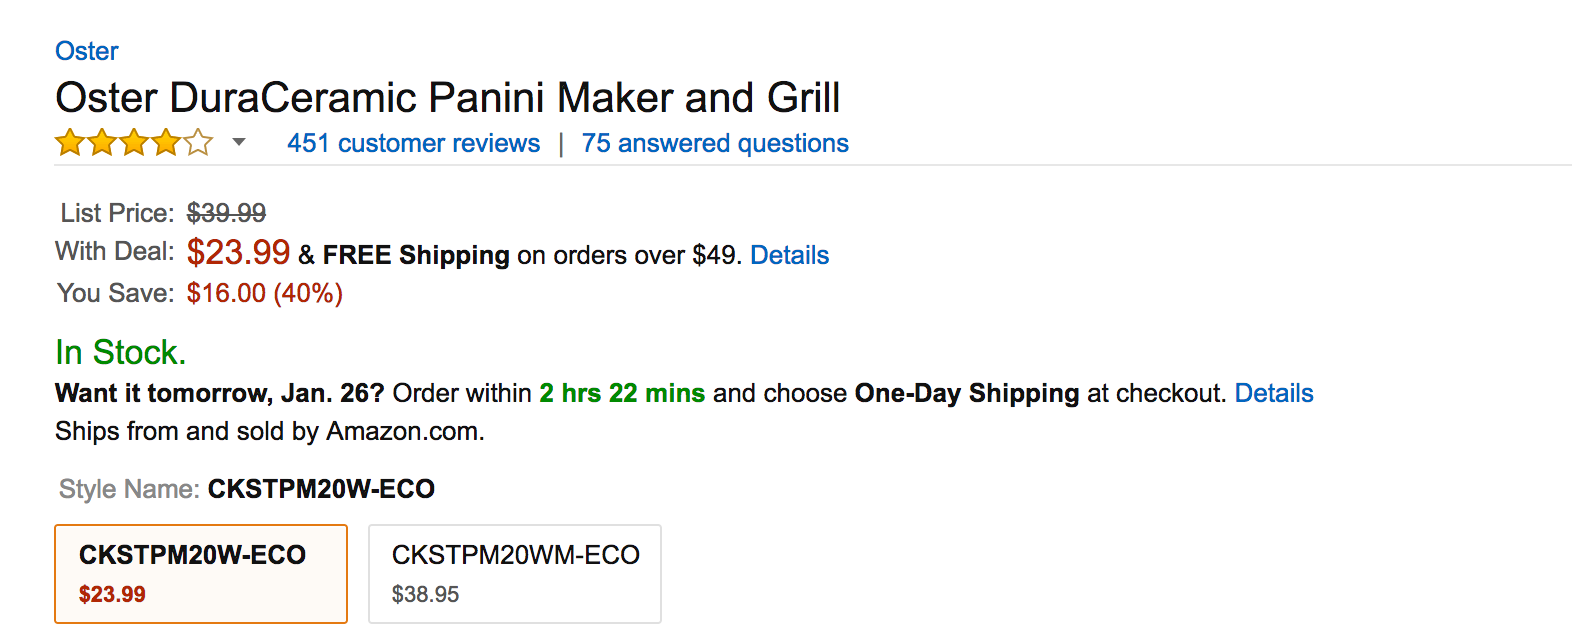 oster-duraceramic-panini-maker-and-grill-2